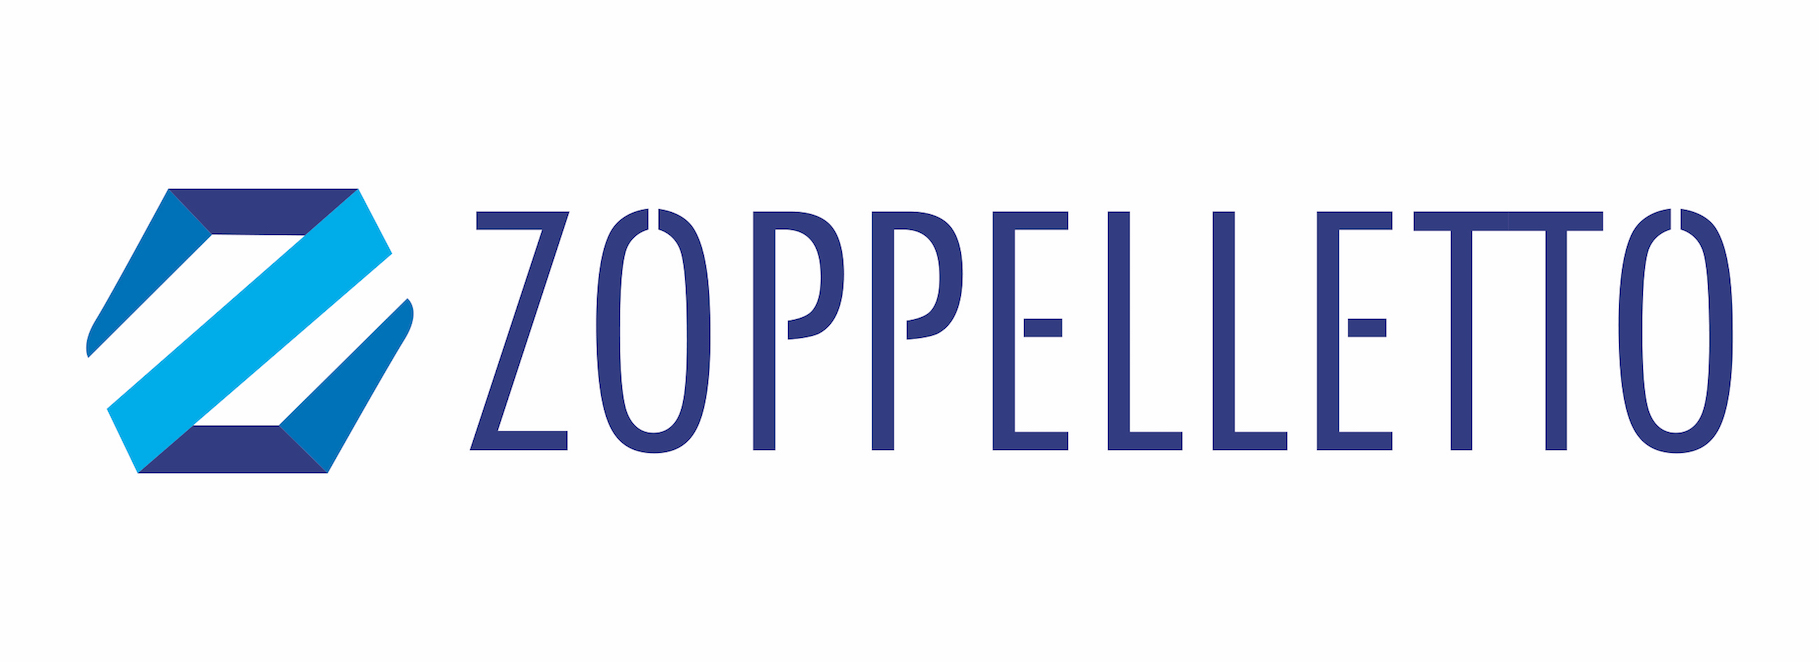 Zoppelletto